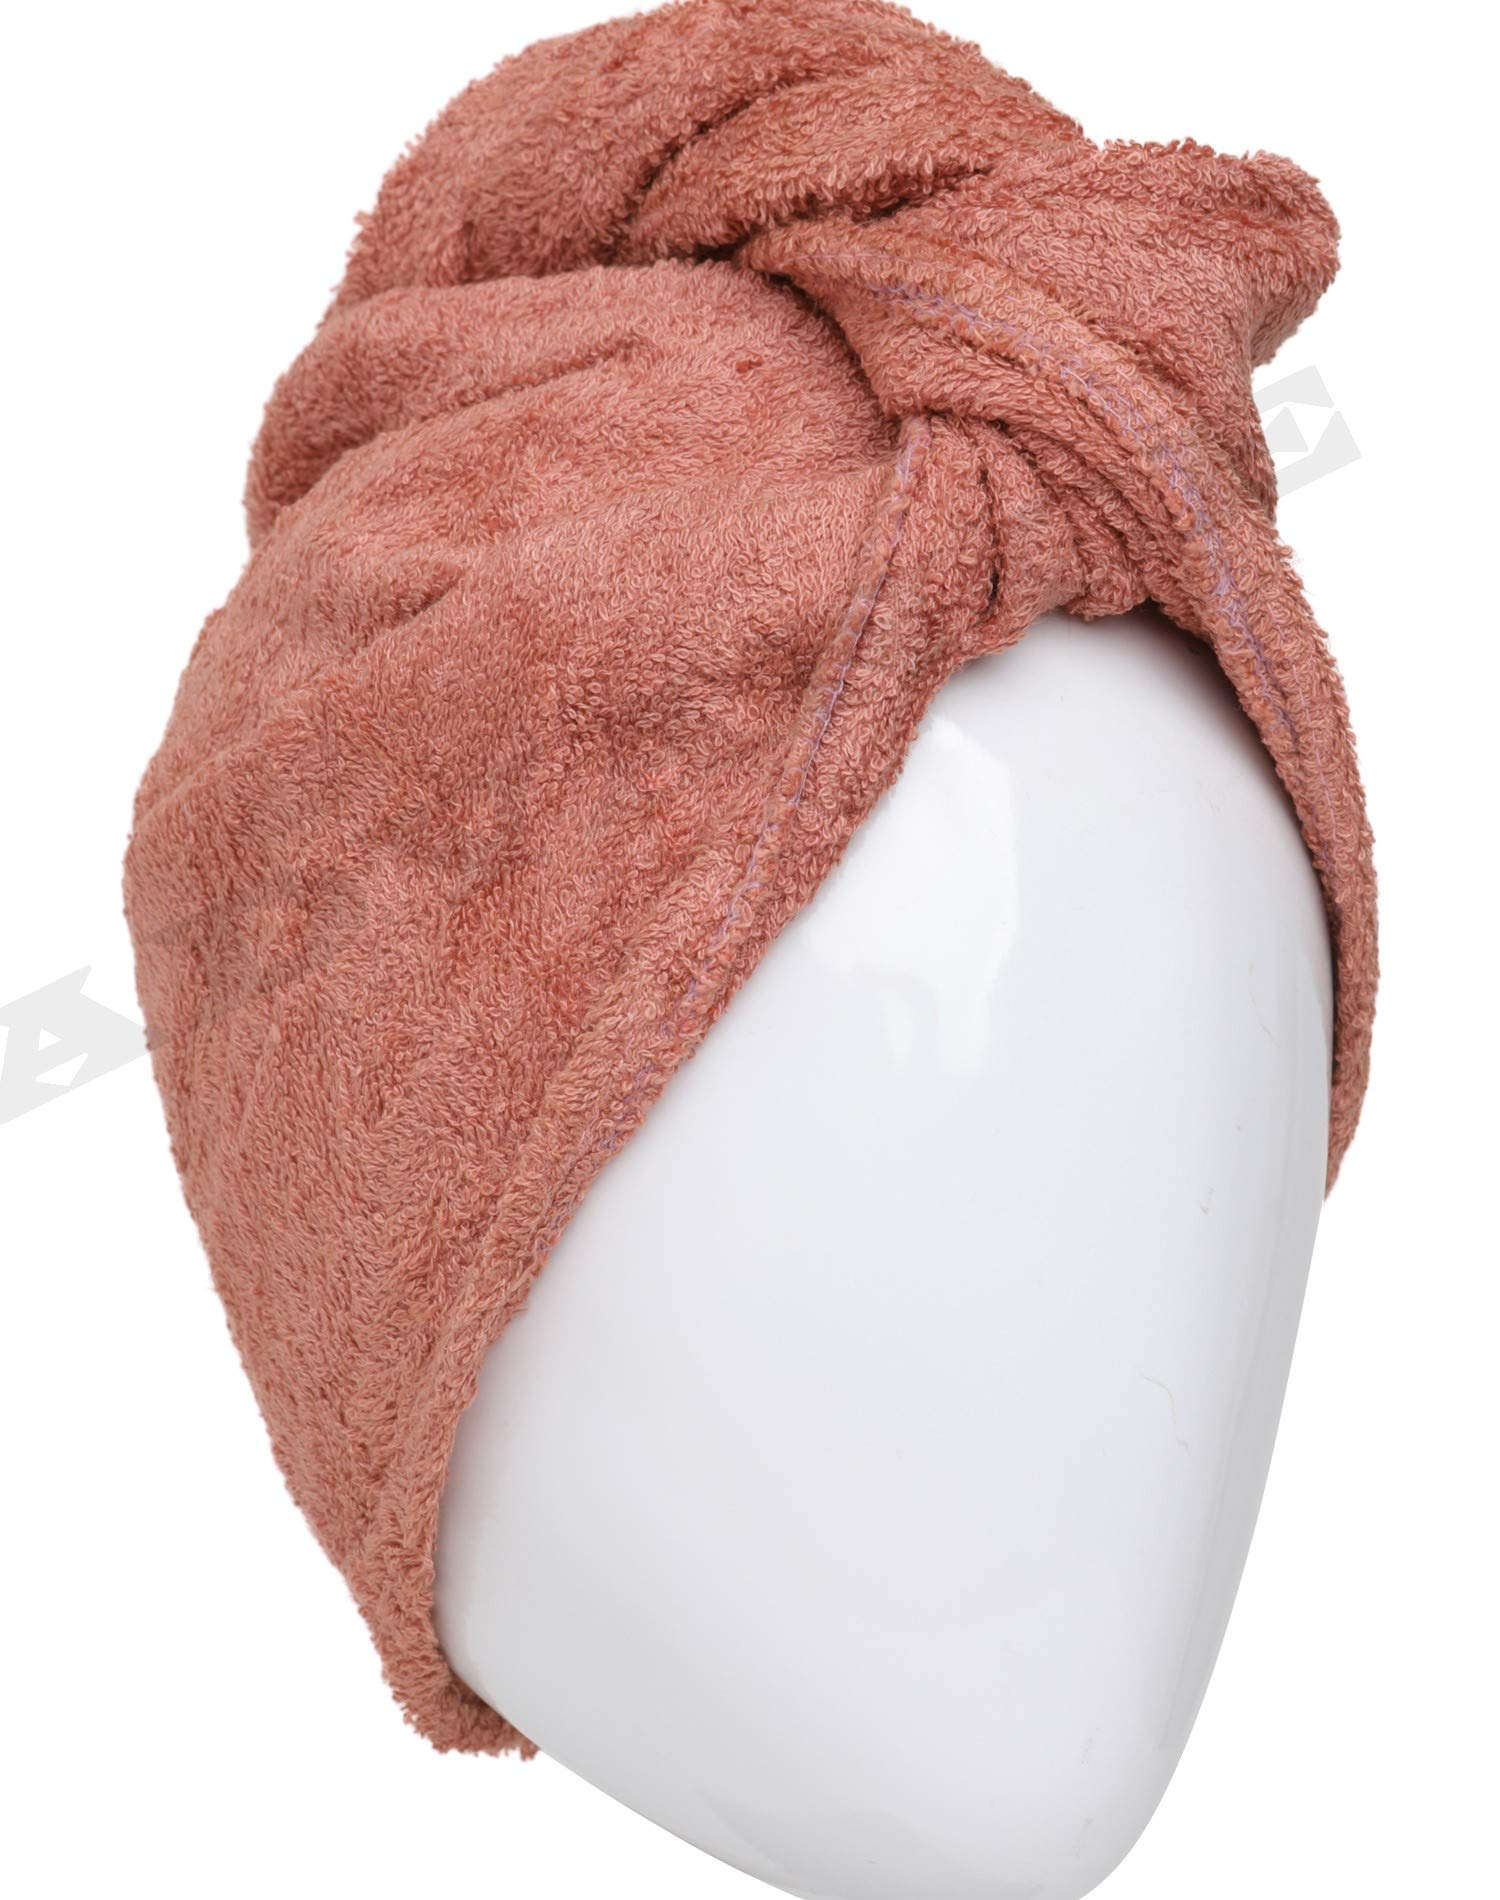 (Pack of 2) 100% Cotton Hair Bath Towel Turban Wrap Terry Long Soft Hair Drying Towels - NOT MICROFIBER (Dark Rose Pink) by advance.market